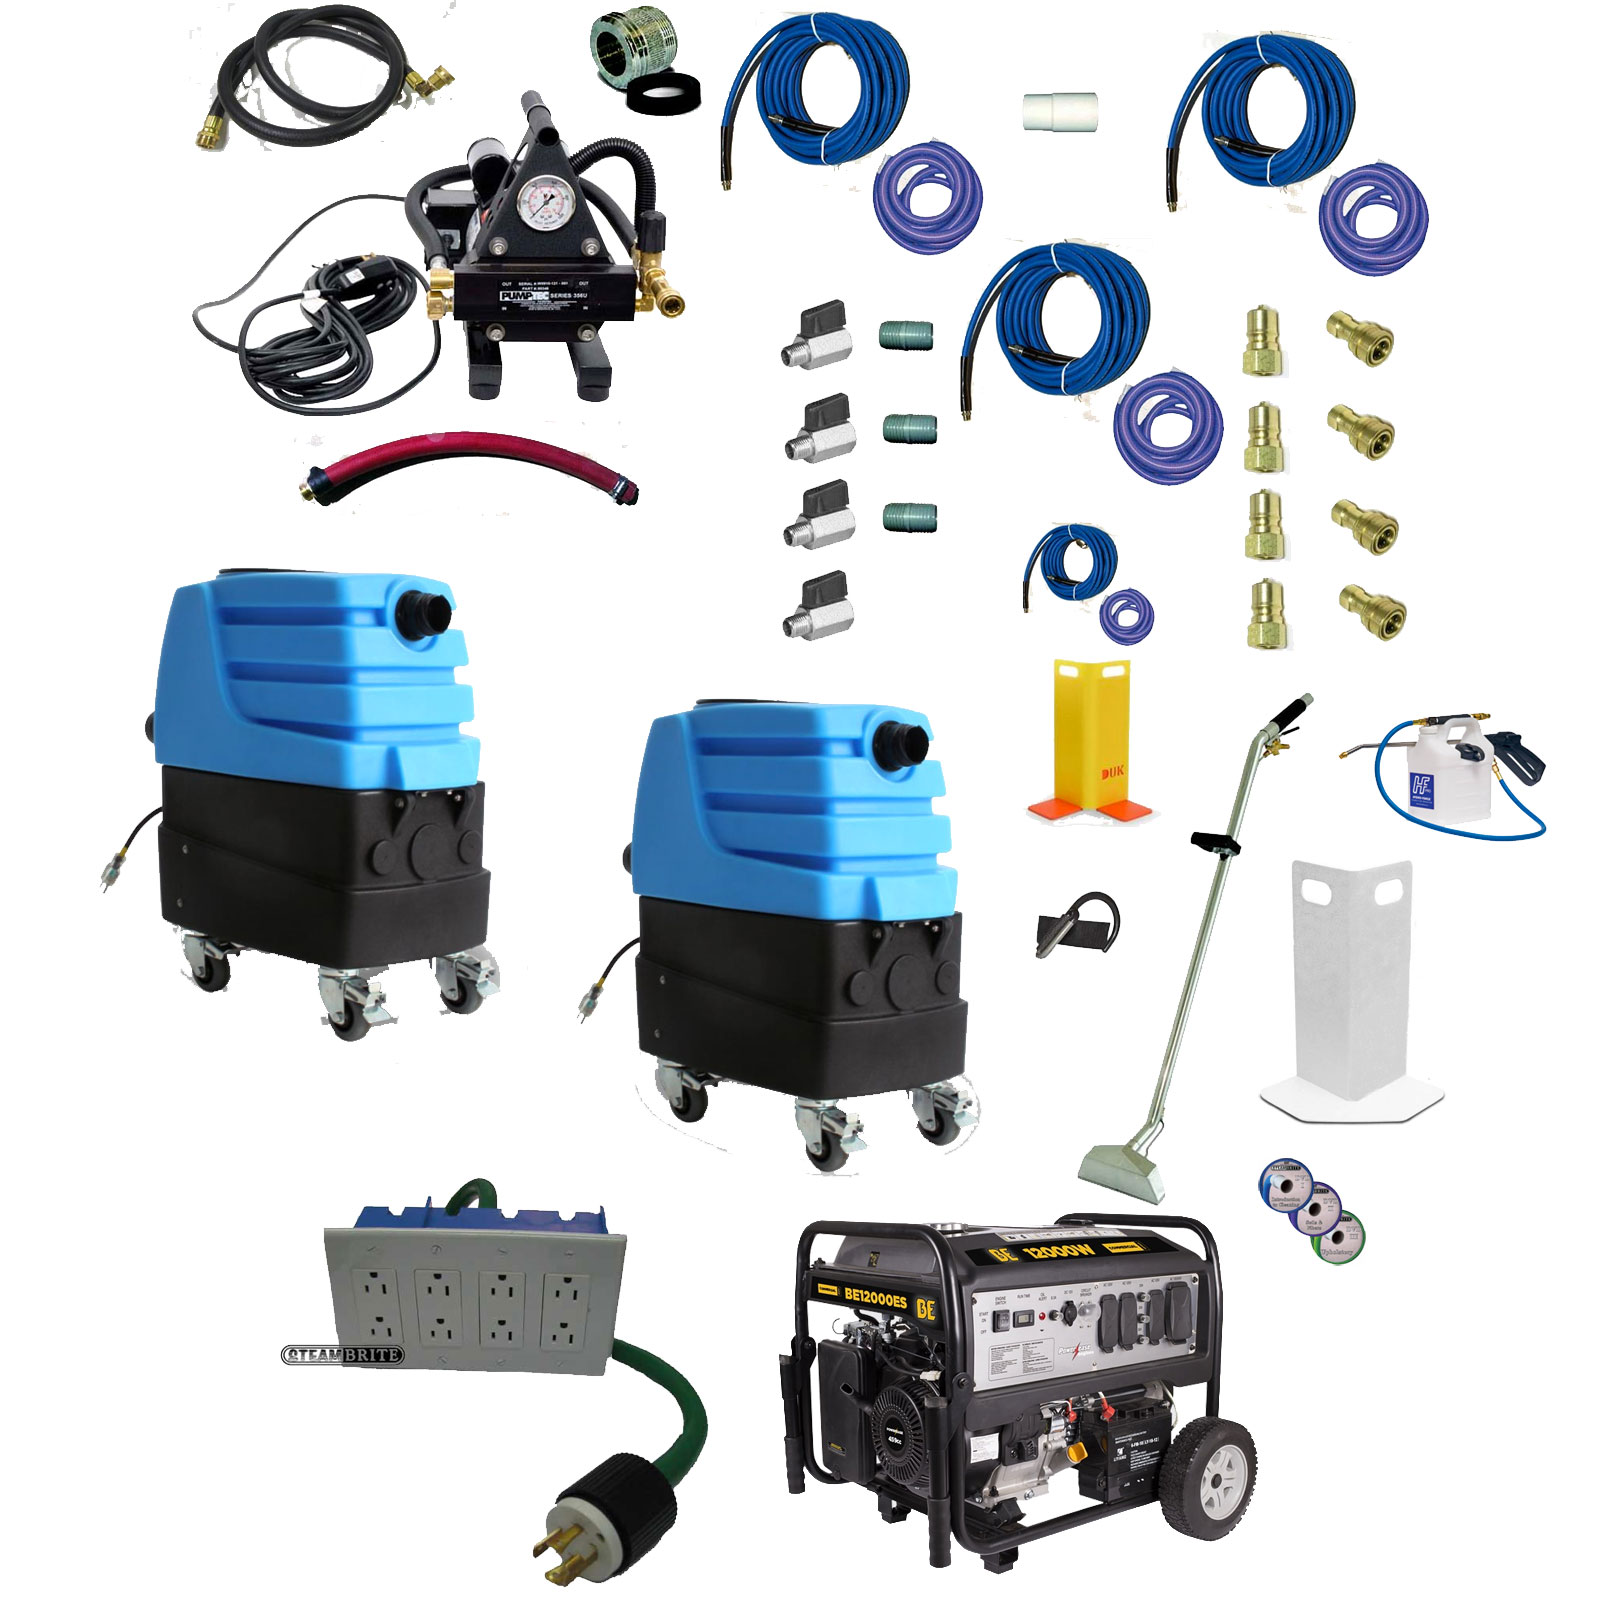 Escape From the Mytee Escape ETM Electric TruckMount Starter Bundle Package 20191120 Dual 7303LX 1200Psi 459cc Generator